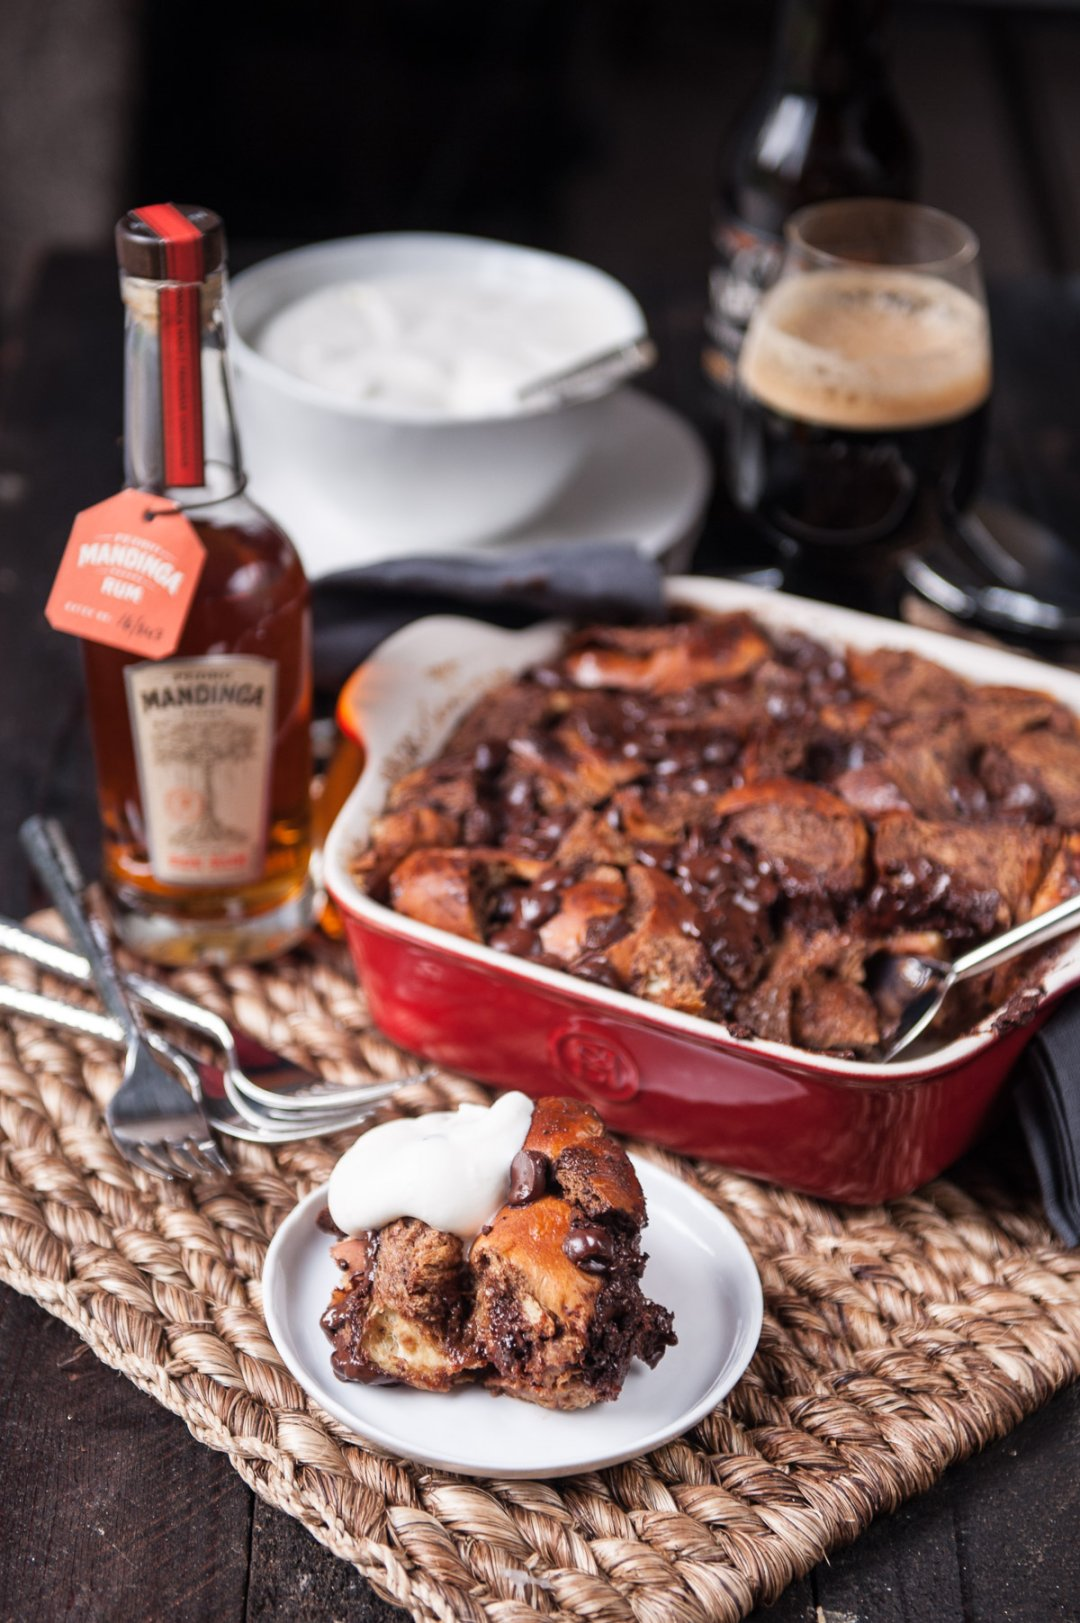 small plate of chocolate stout bread pudding surrounded by a bottle of rum a bowl of whipped cream a red dish of bread pudding and a glass of stout beer